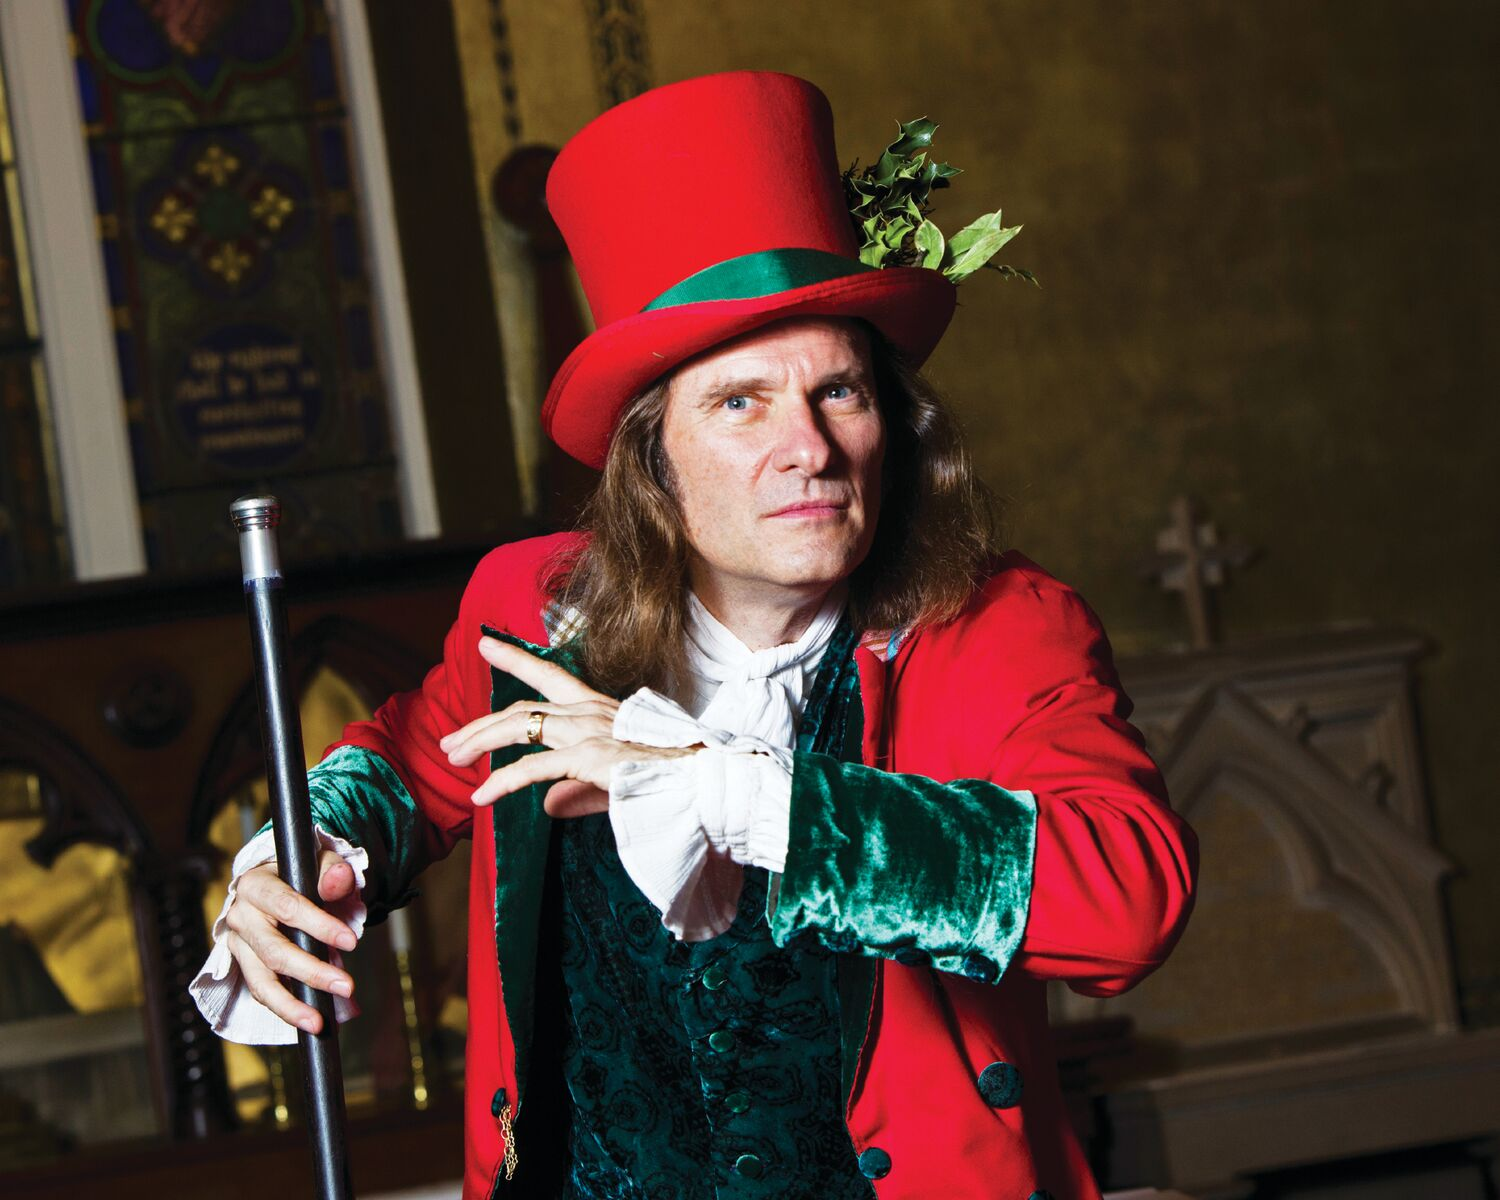 Fun Holiday Performances And Events From The Historic